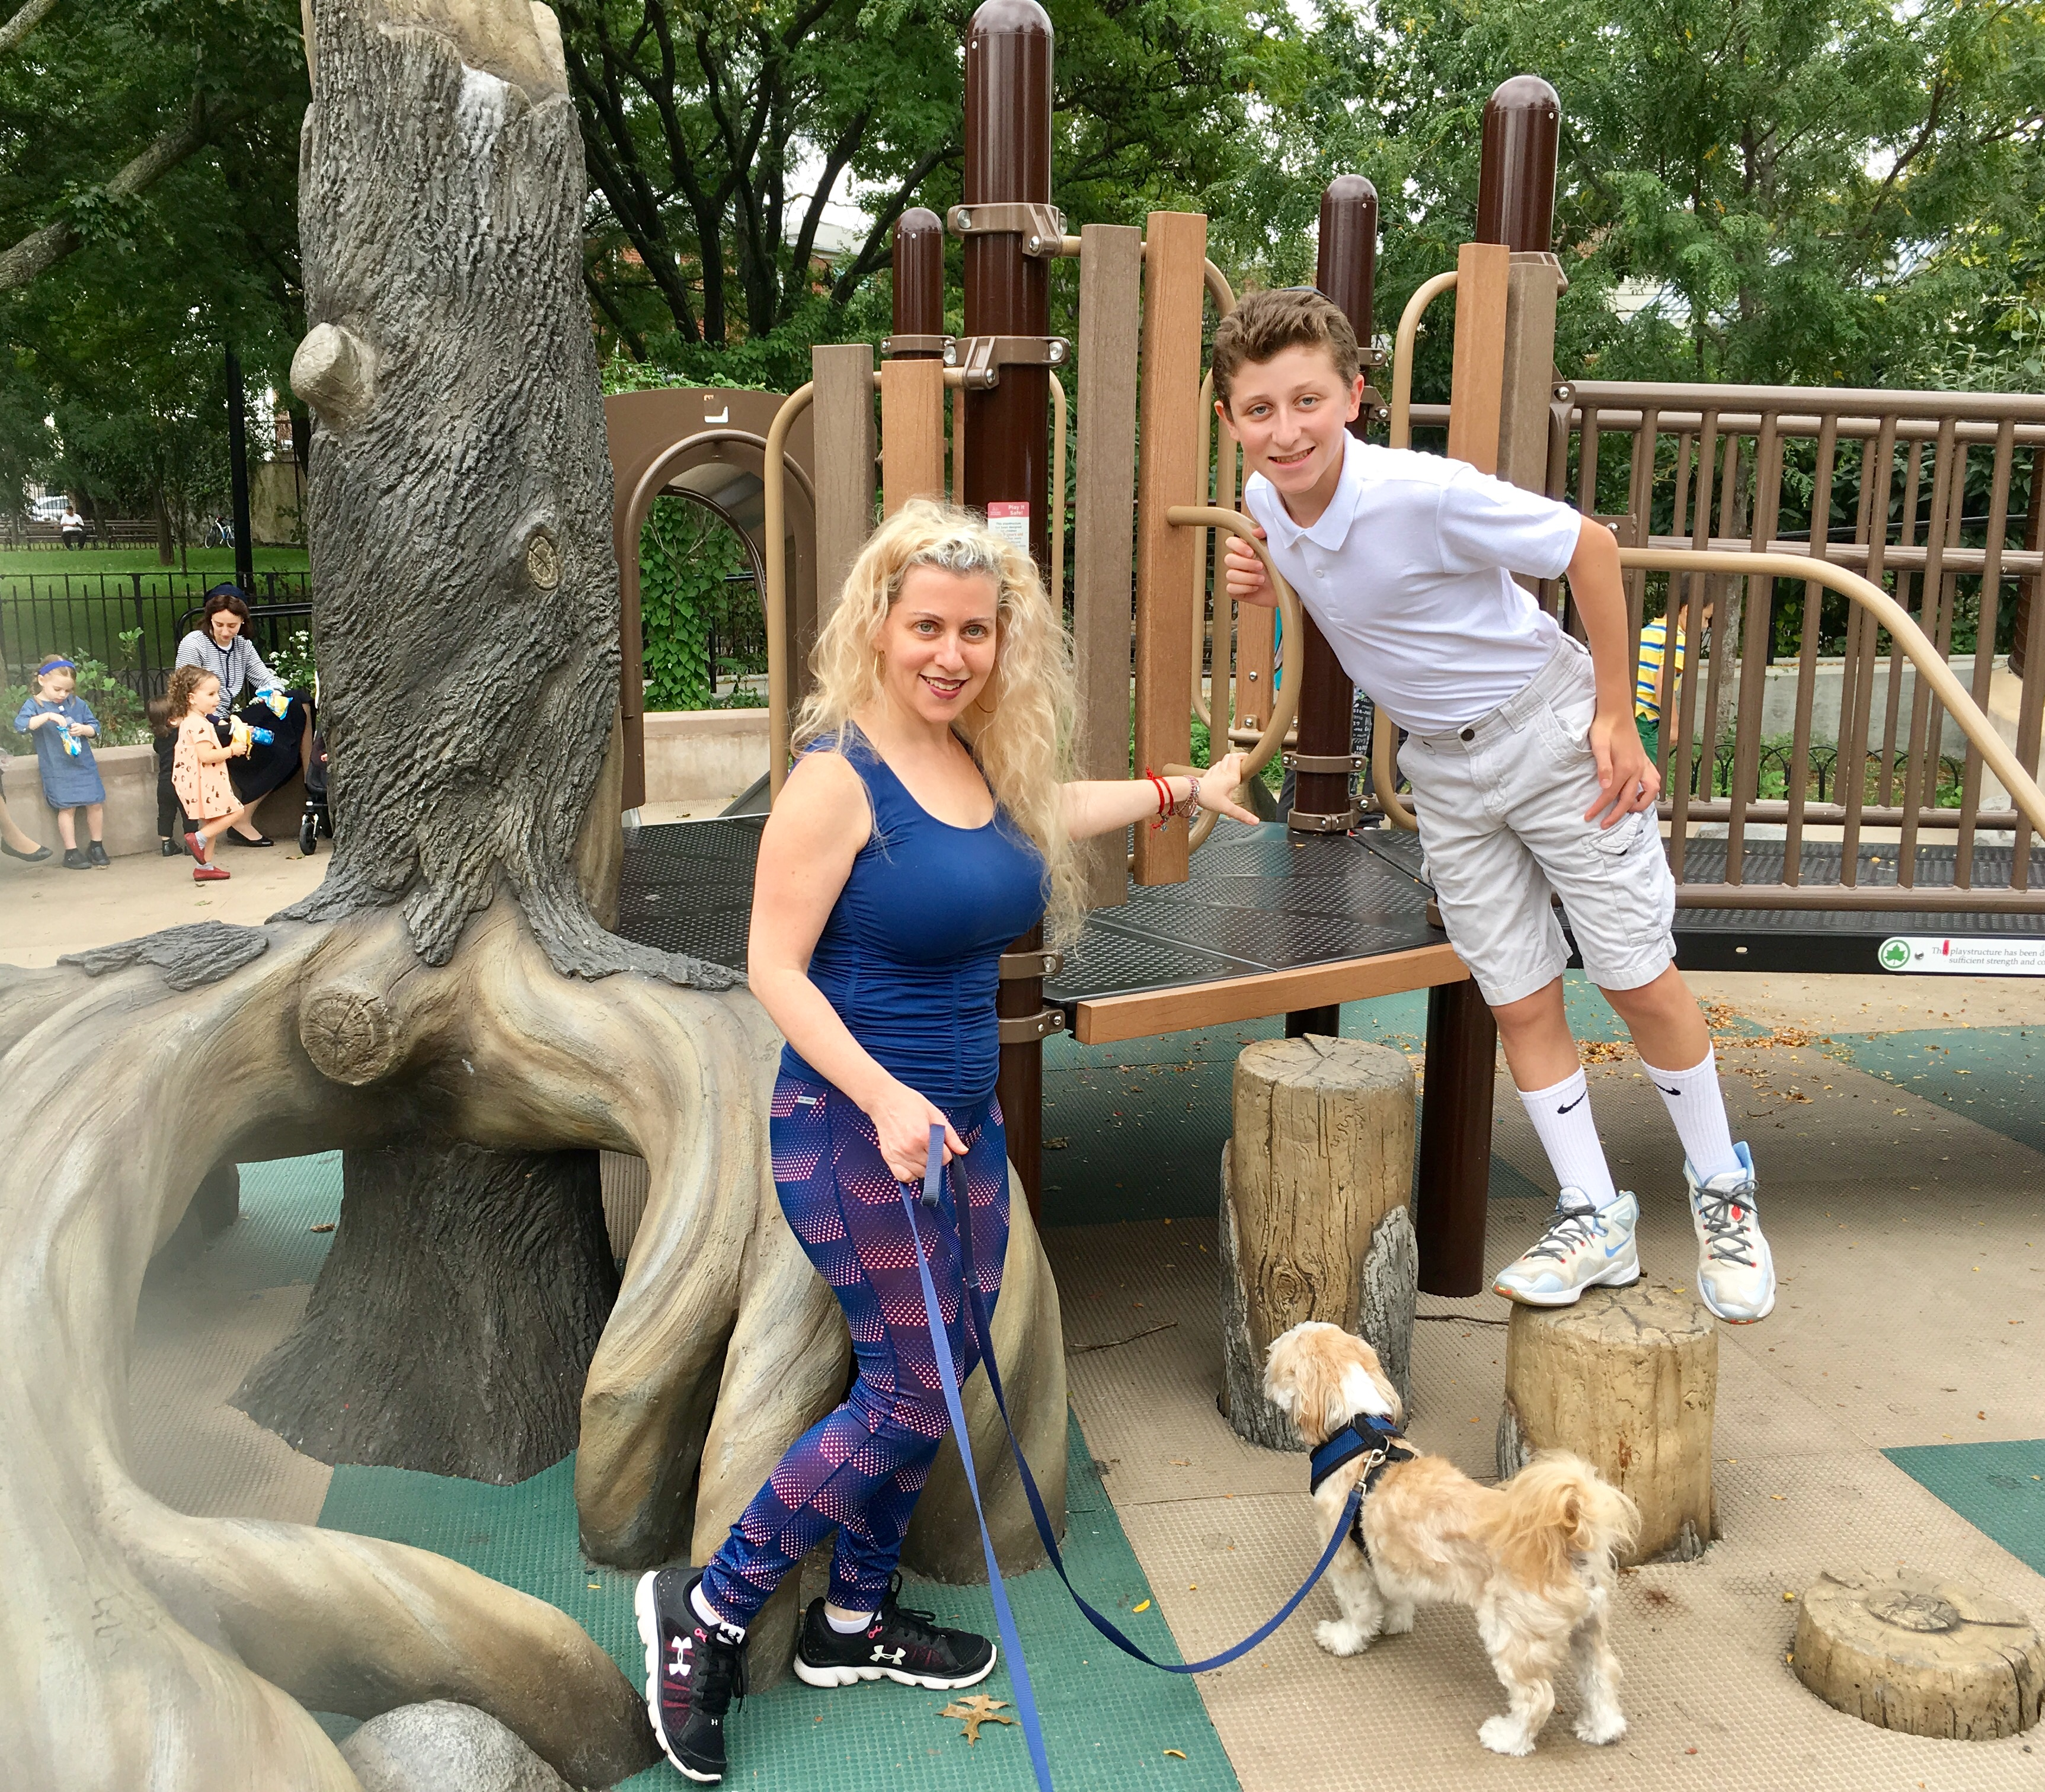 Four Great Reasons For Spending Time Outdoors as a Family